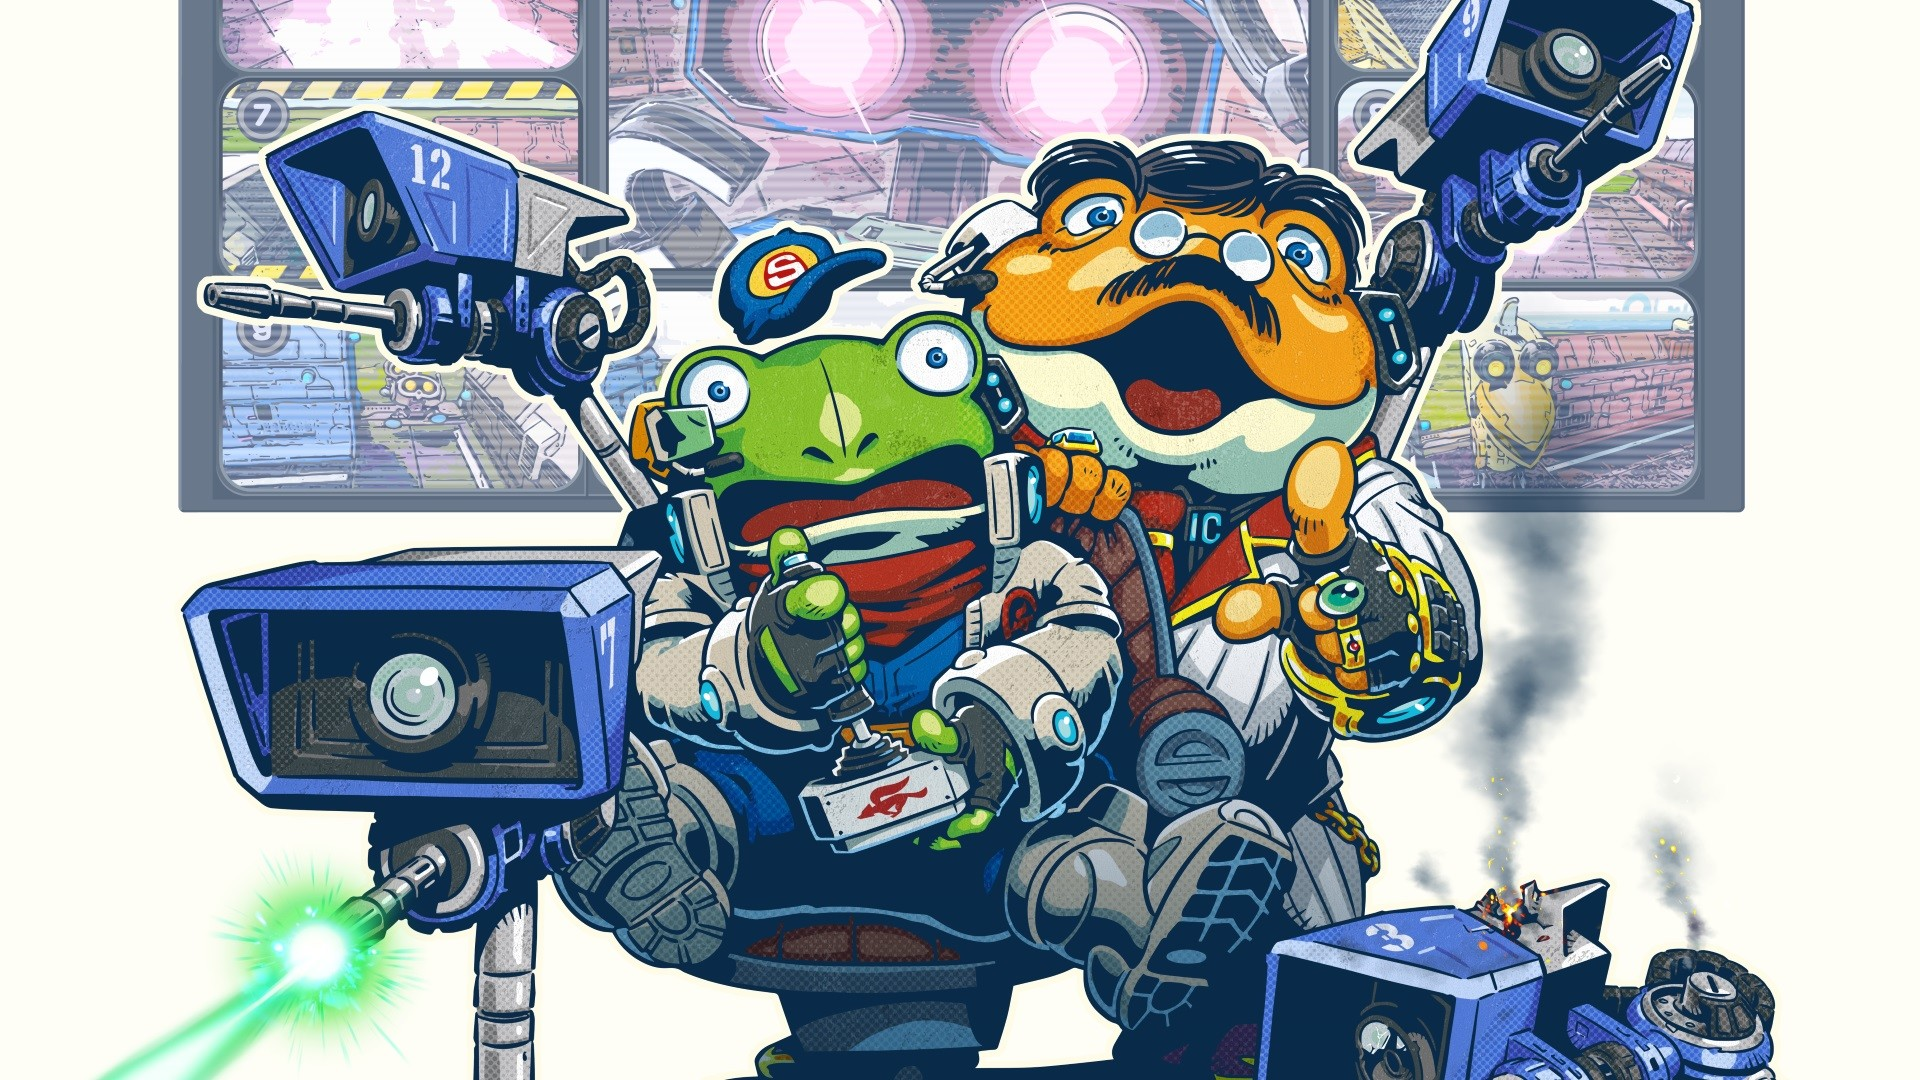 1920x1080 Star Fox Guard review - a triumph for the Wii U GamePad | Expert Reviews